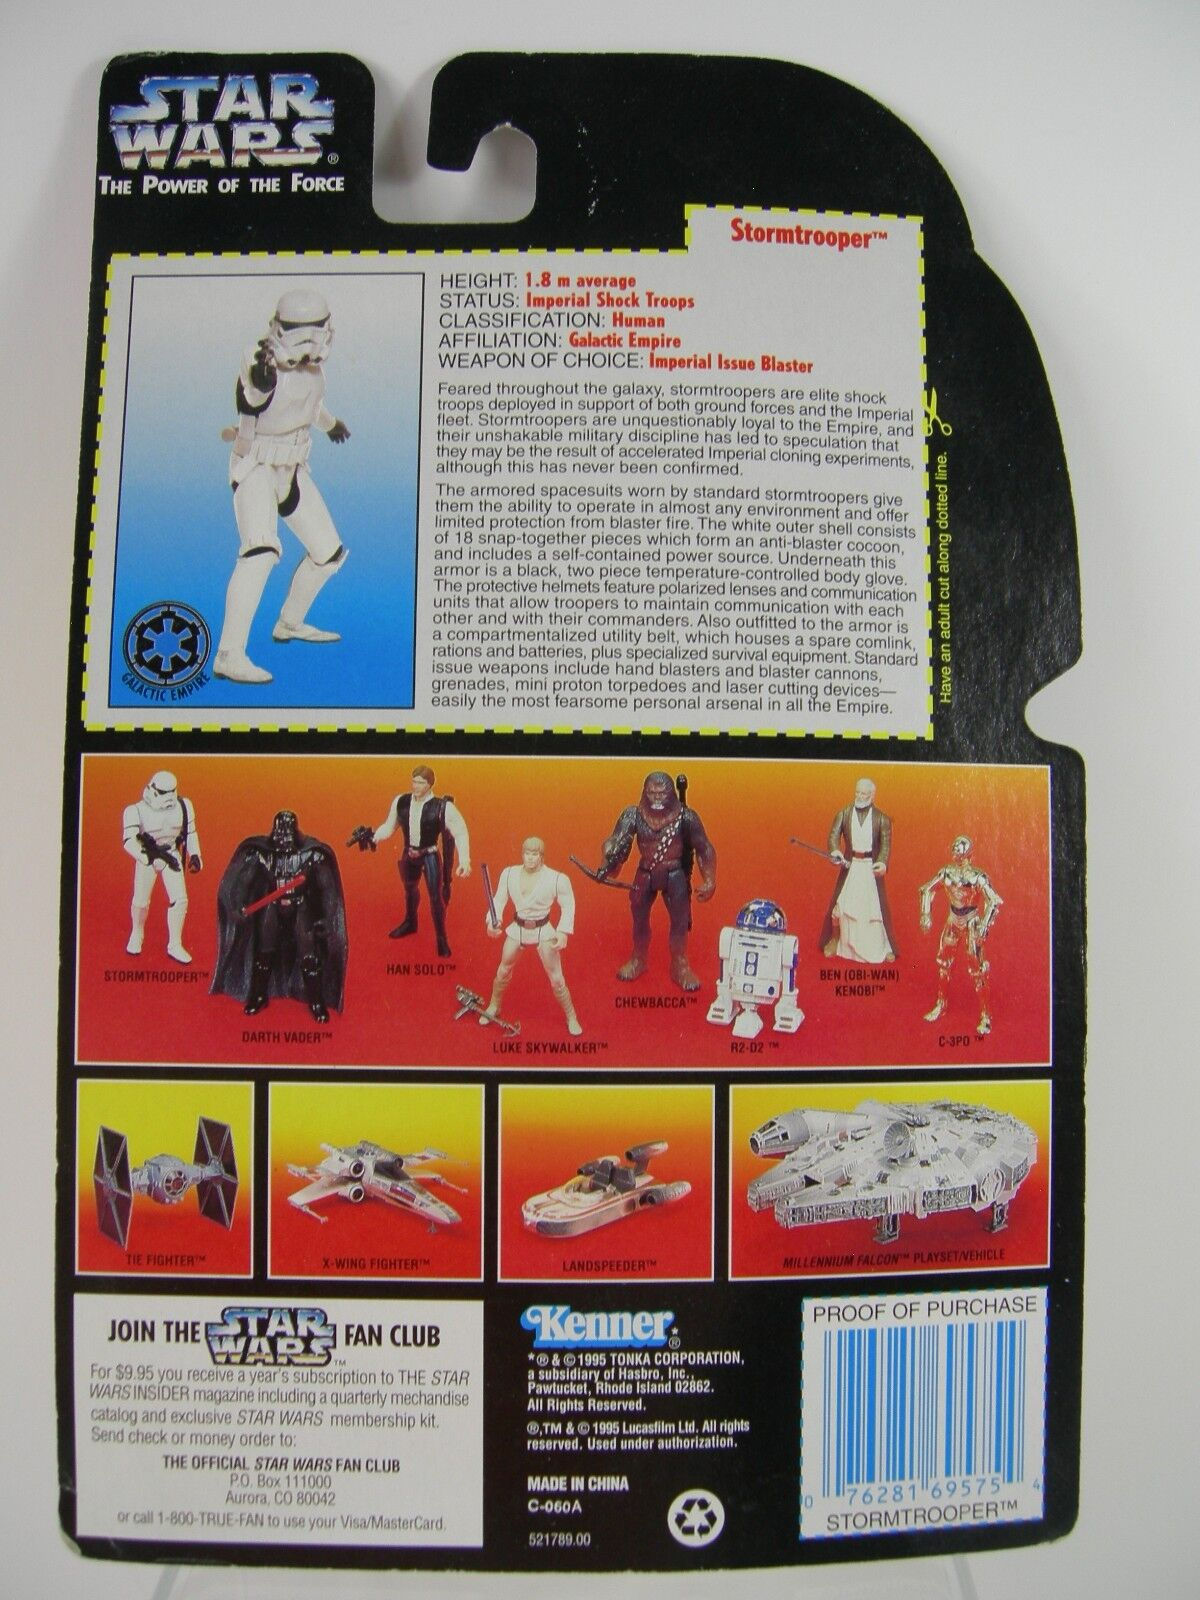 StarWars collection : Star Wars Stormtrooper Power Of The Force Red/Orange Card 1995 Figurine